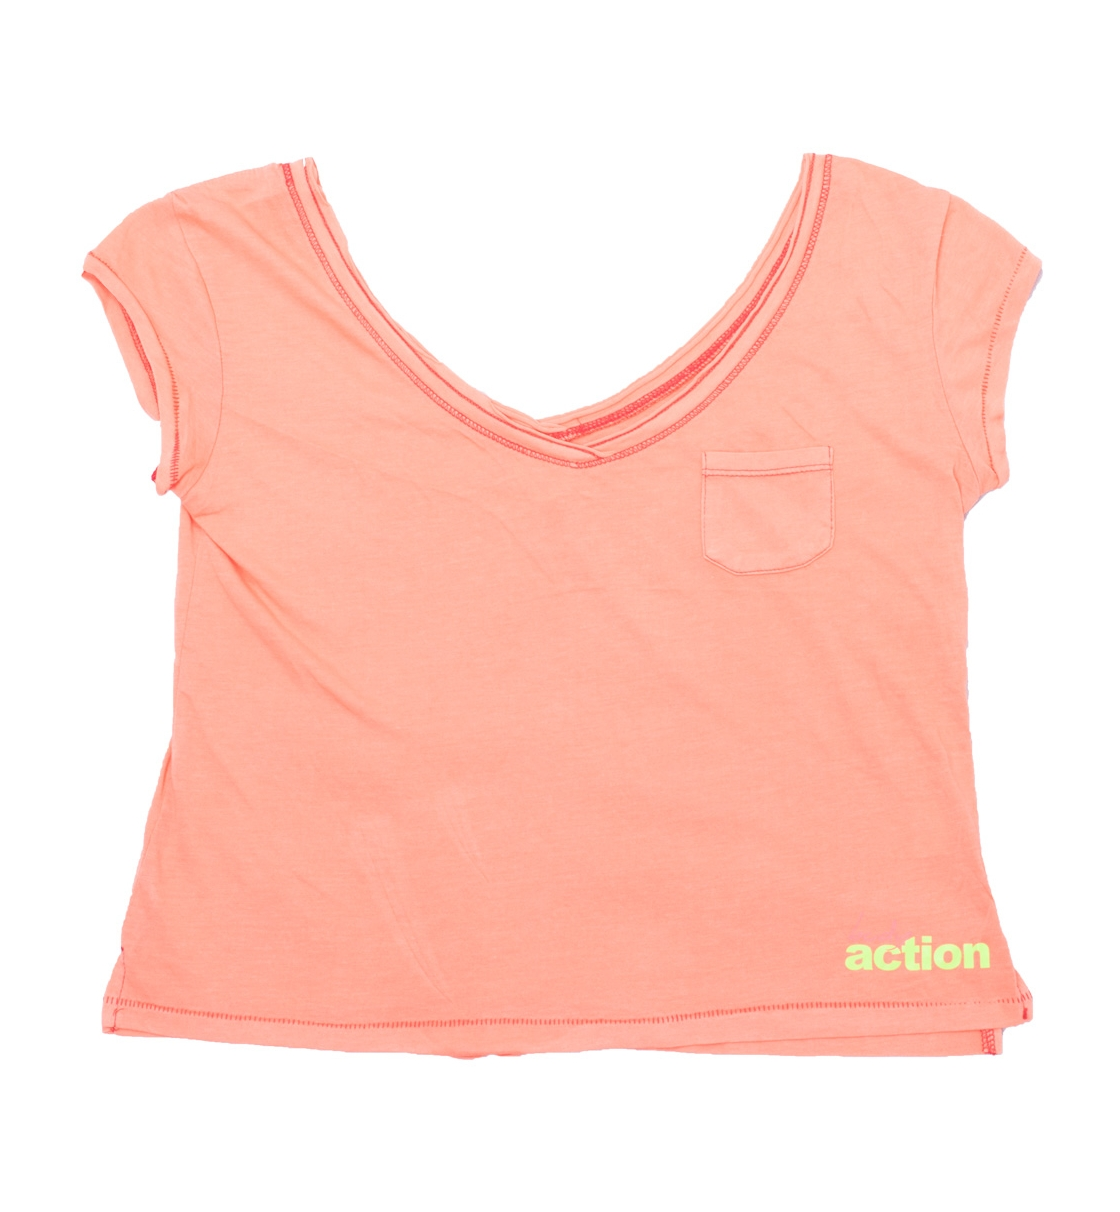 Body Action LOOSE FIT S/S TOP